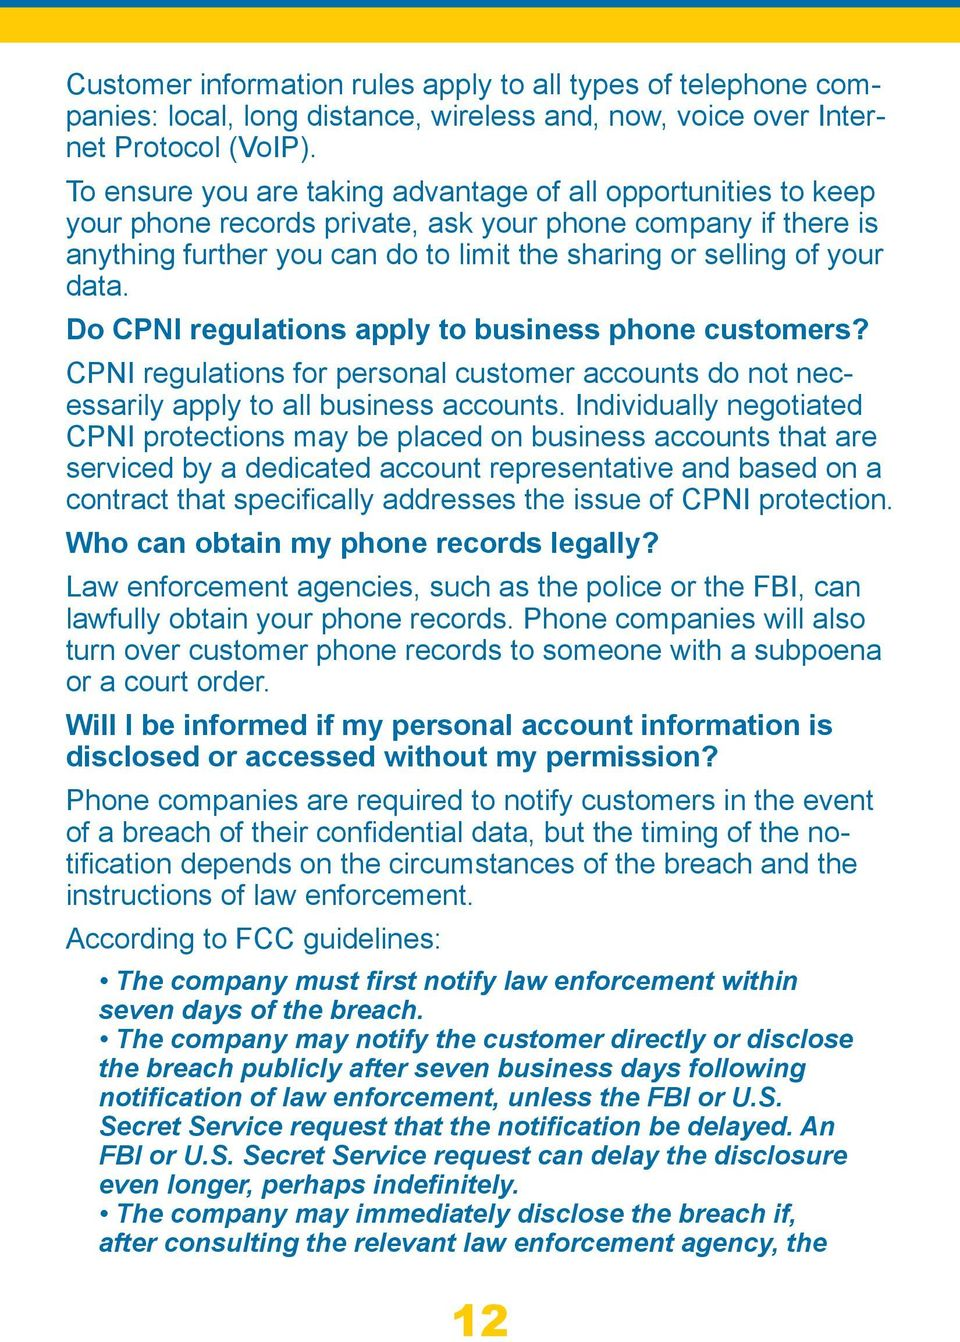 Do CPNI regulations apply to business phone customers? CPNI regulations for personal customer accounts do not necessarily apply to all business accounts.